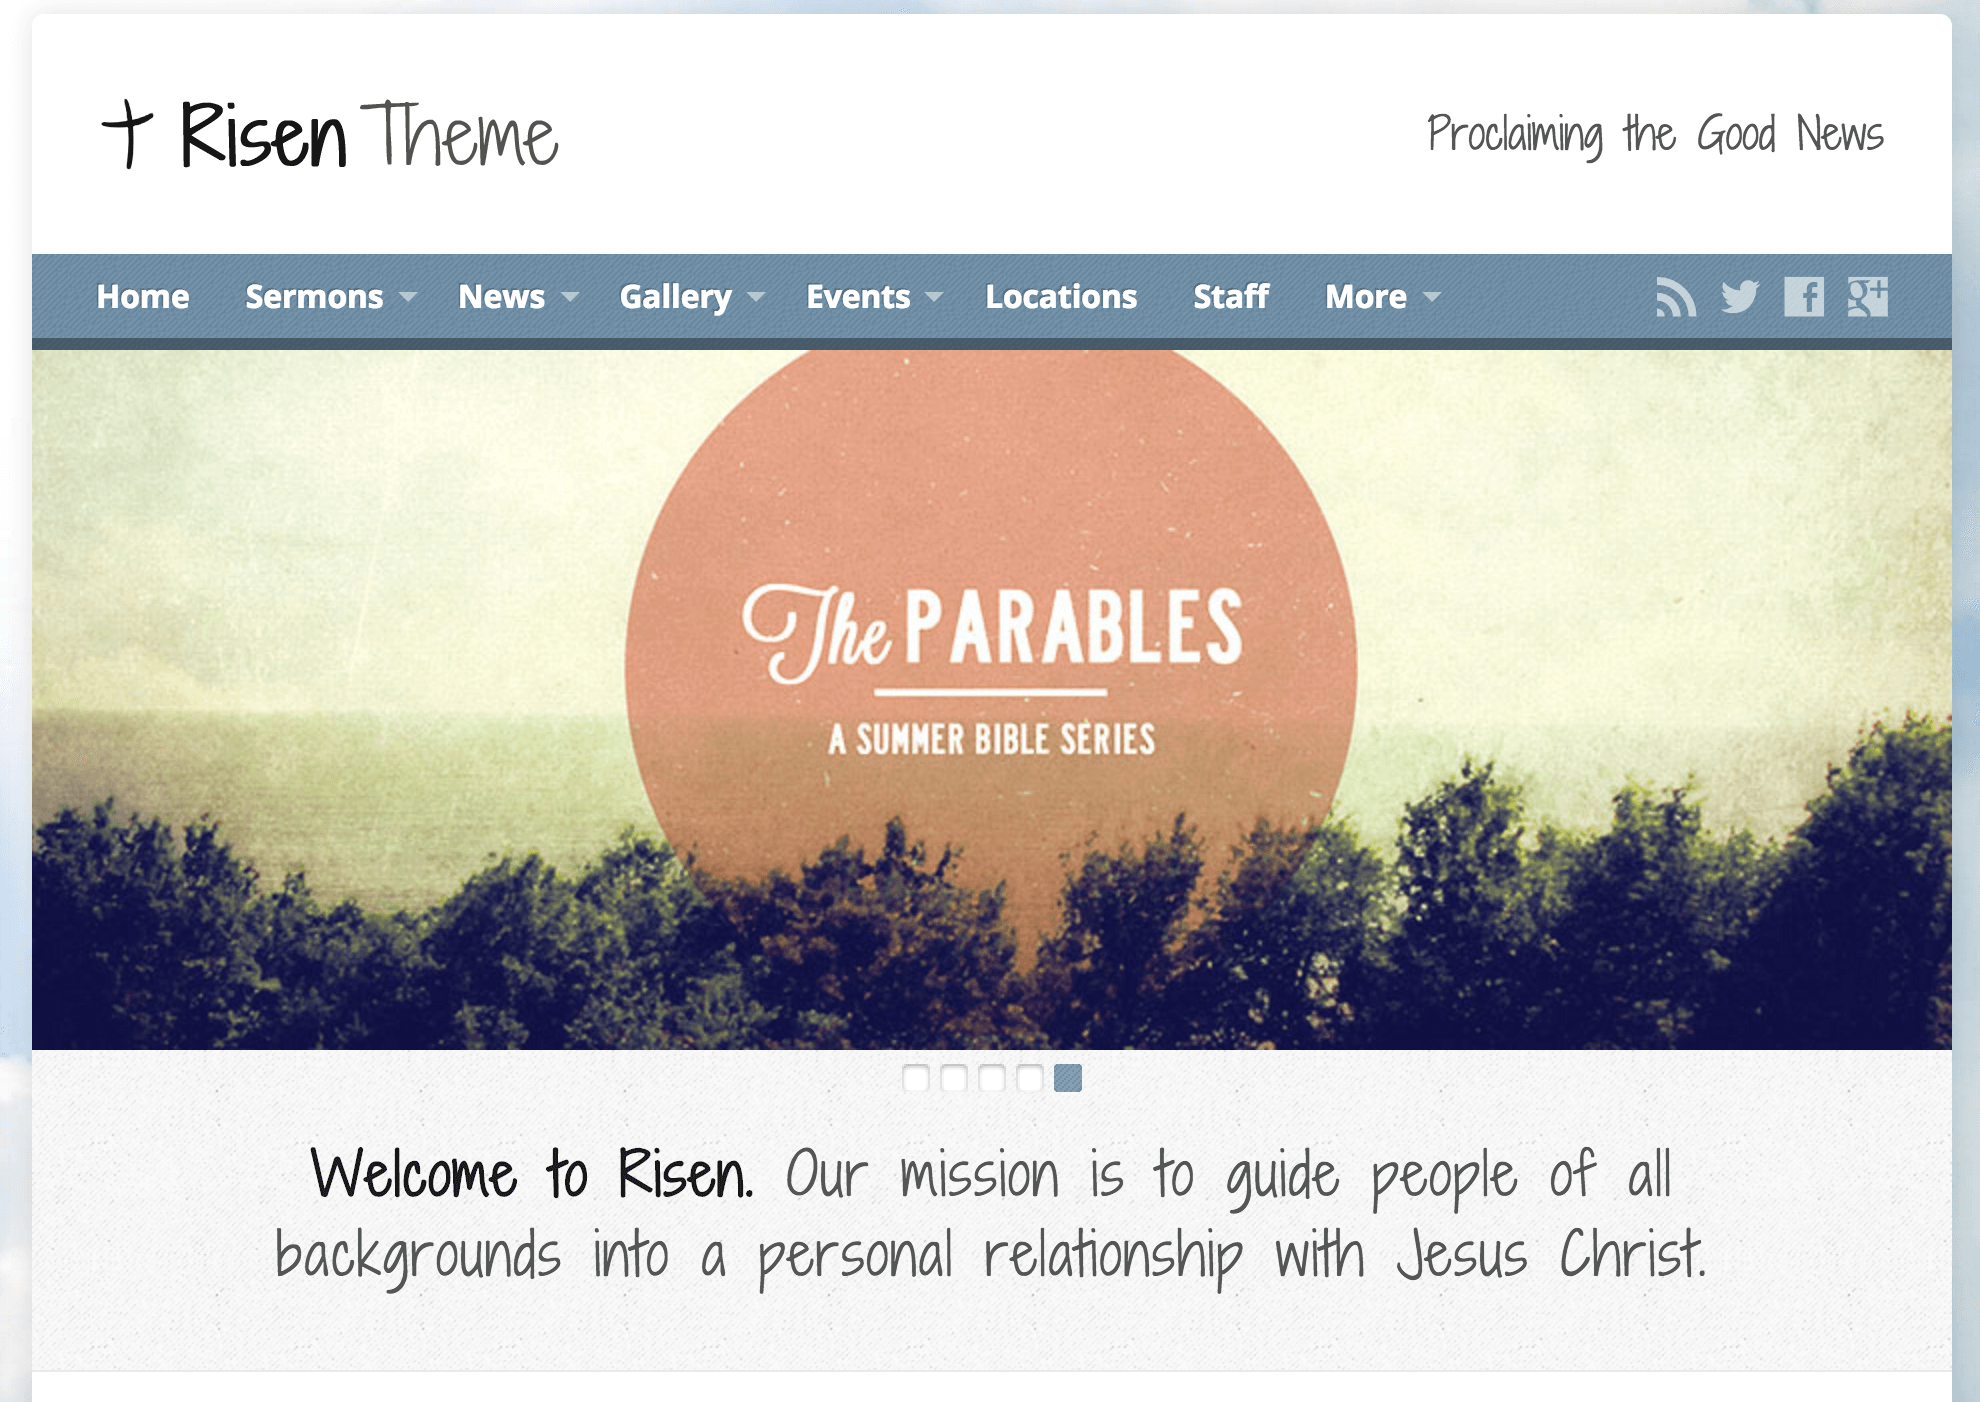 The Risen theme homepage